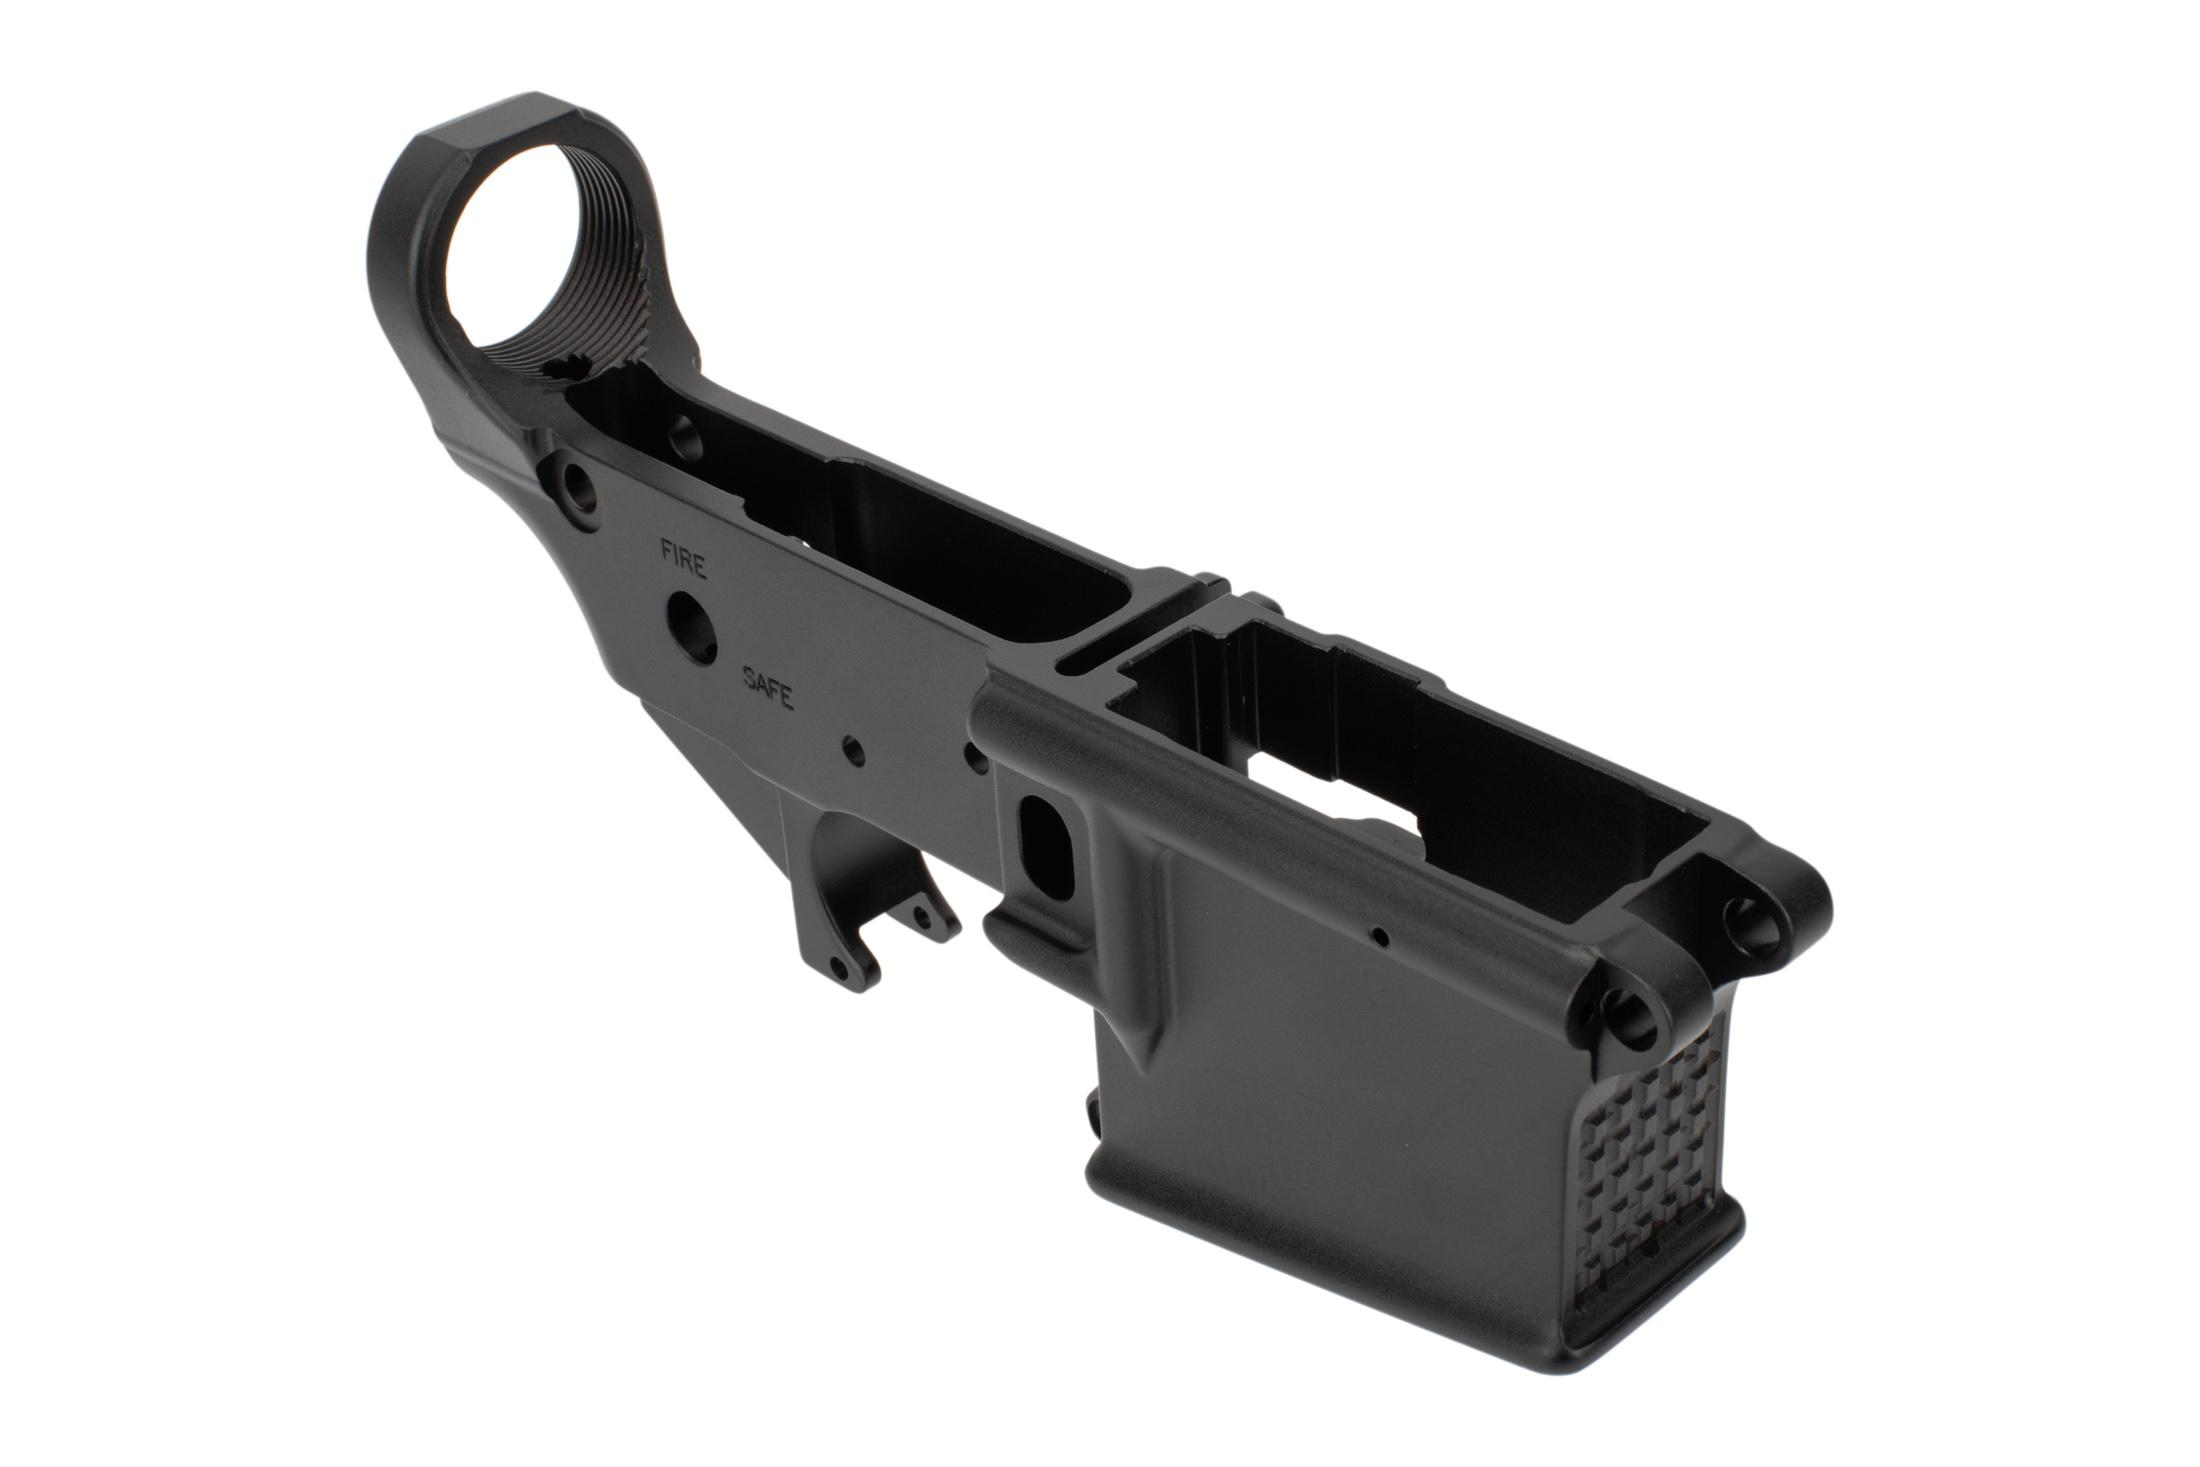 Mega Arms AR-15 Stripped lower receiver features a textured front magazine well